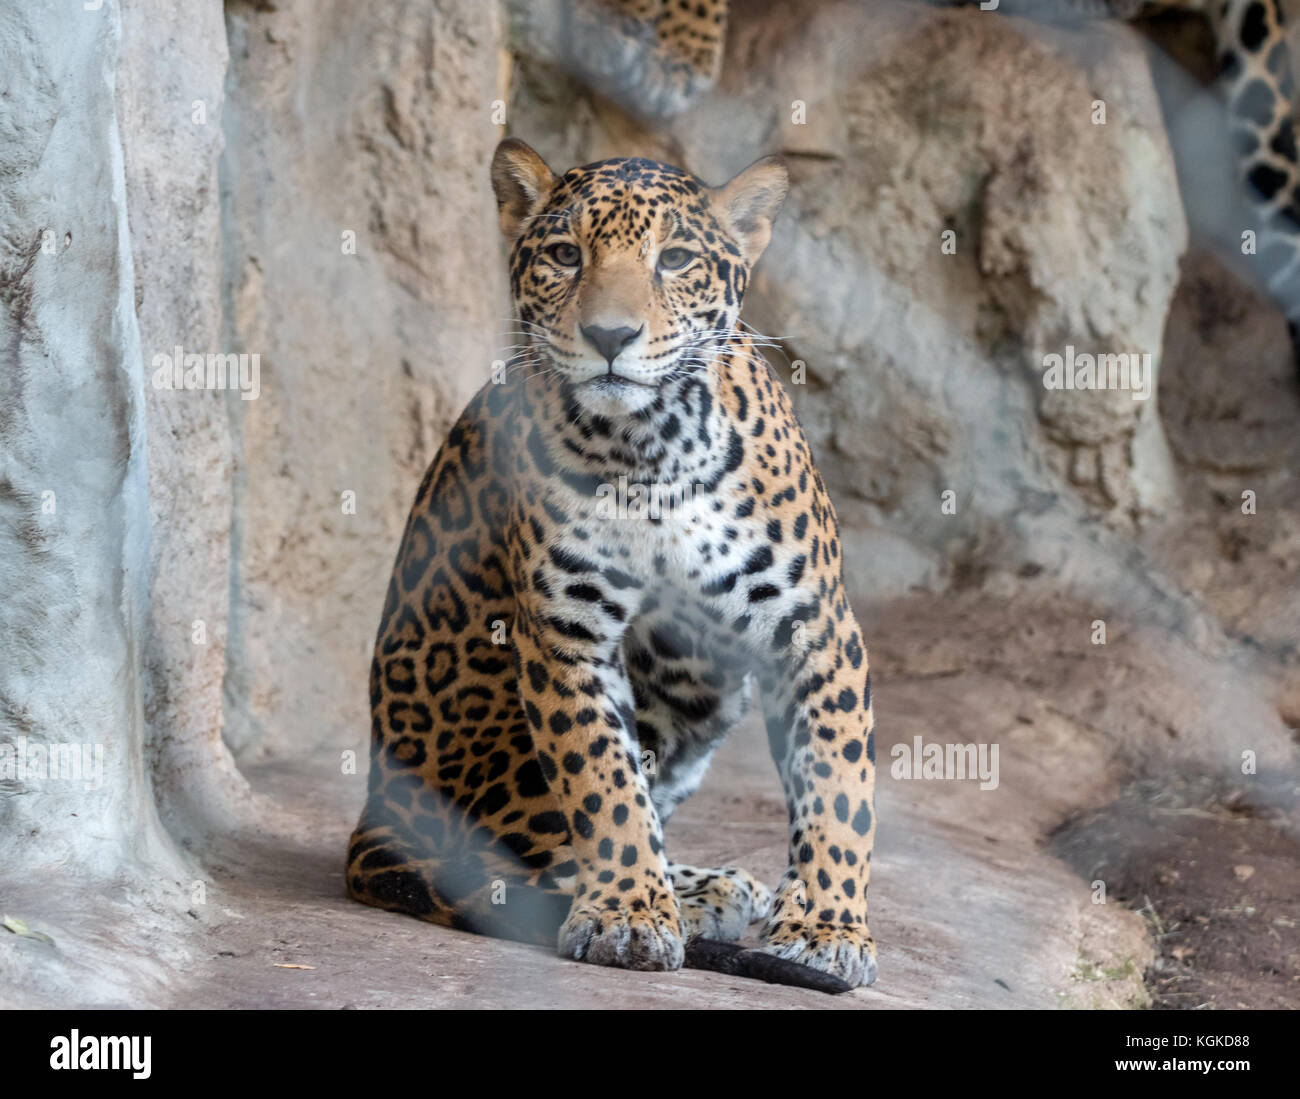 Small Leopard Looking Straight at the Camera - Stock Image